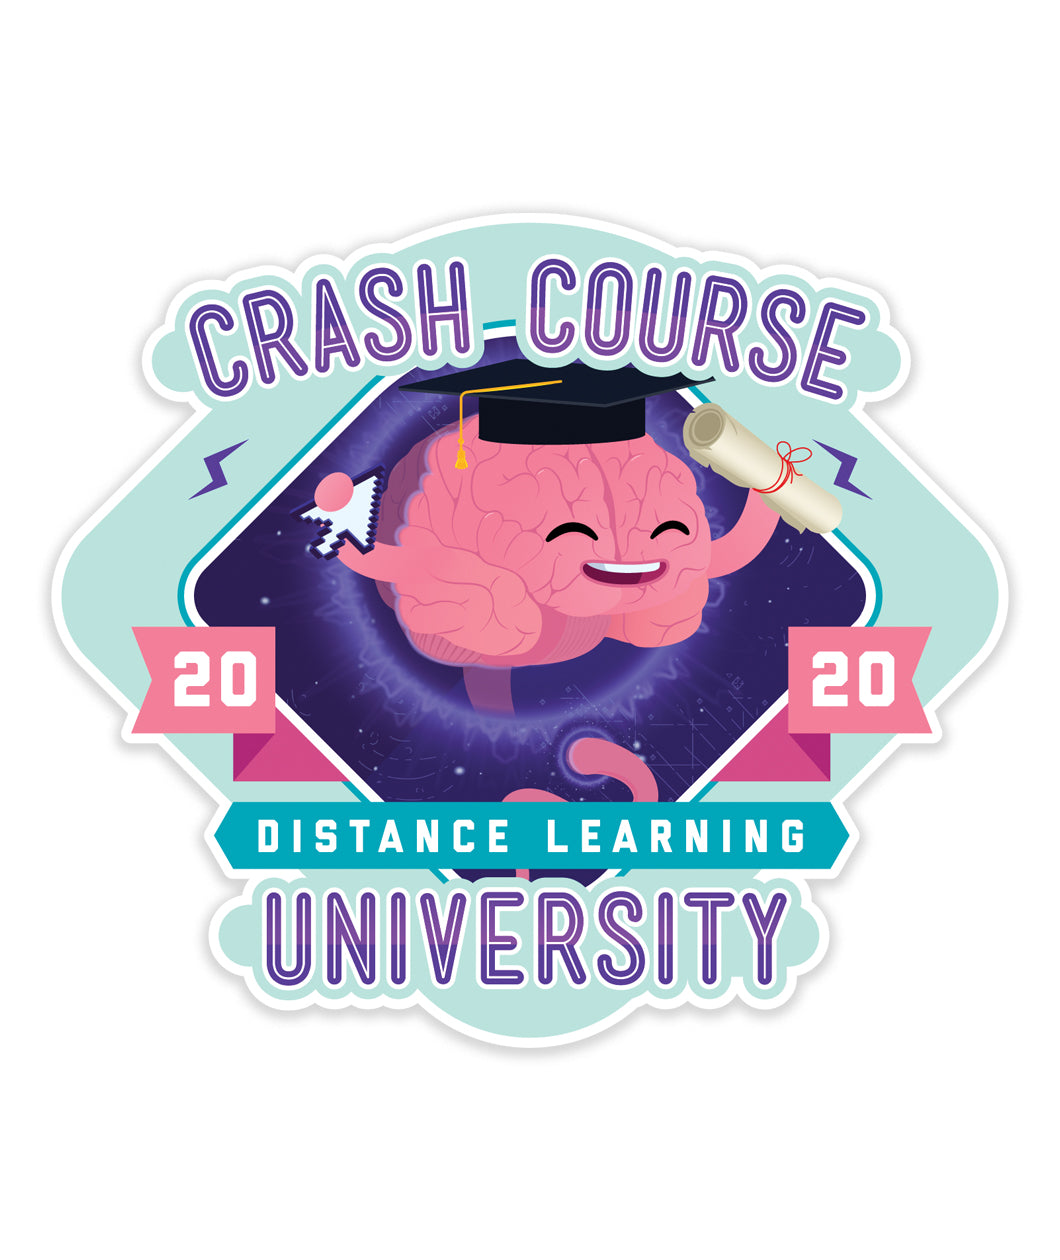 CrashCourse Distance Learning University Decal